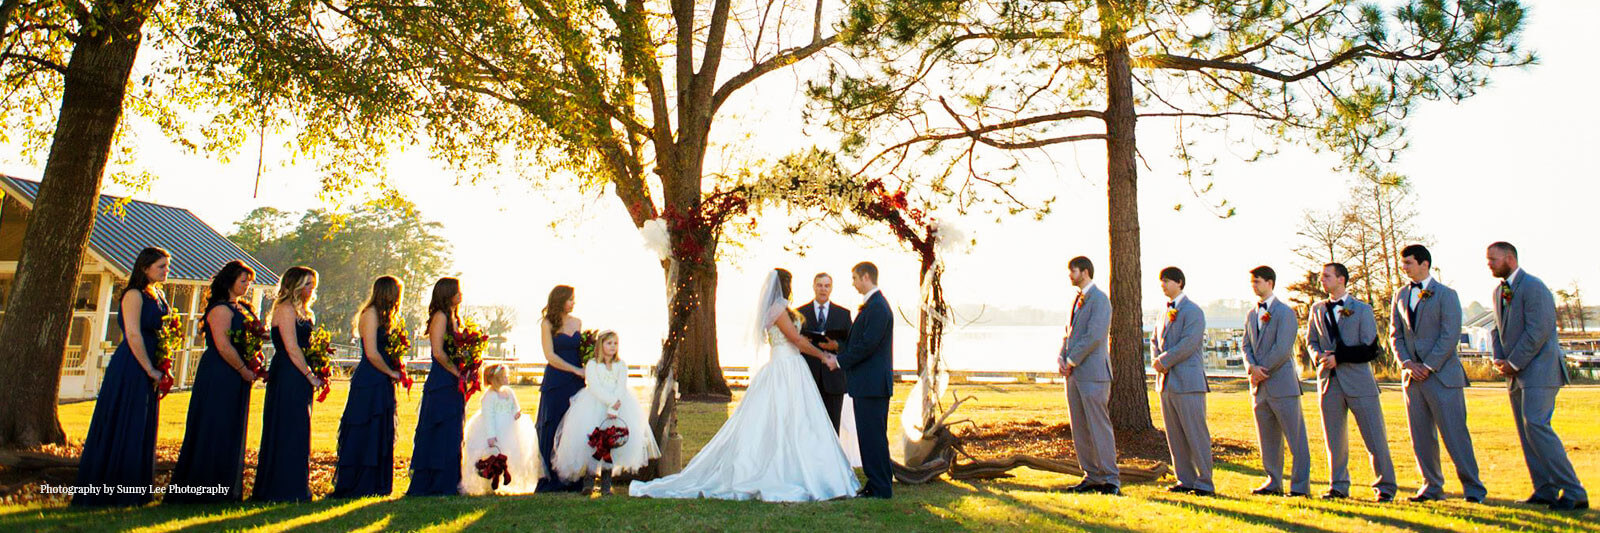 Lake Blackshear Resort Weddings Wedding Gallery